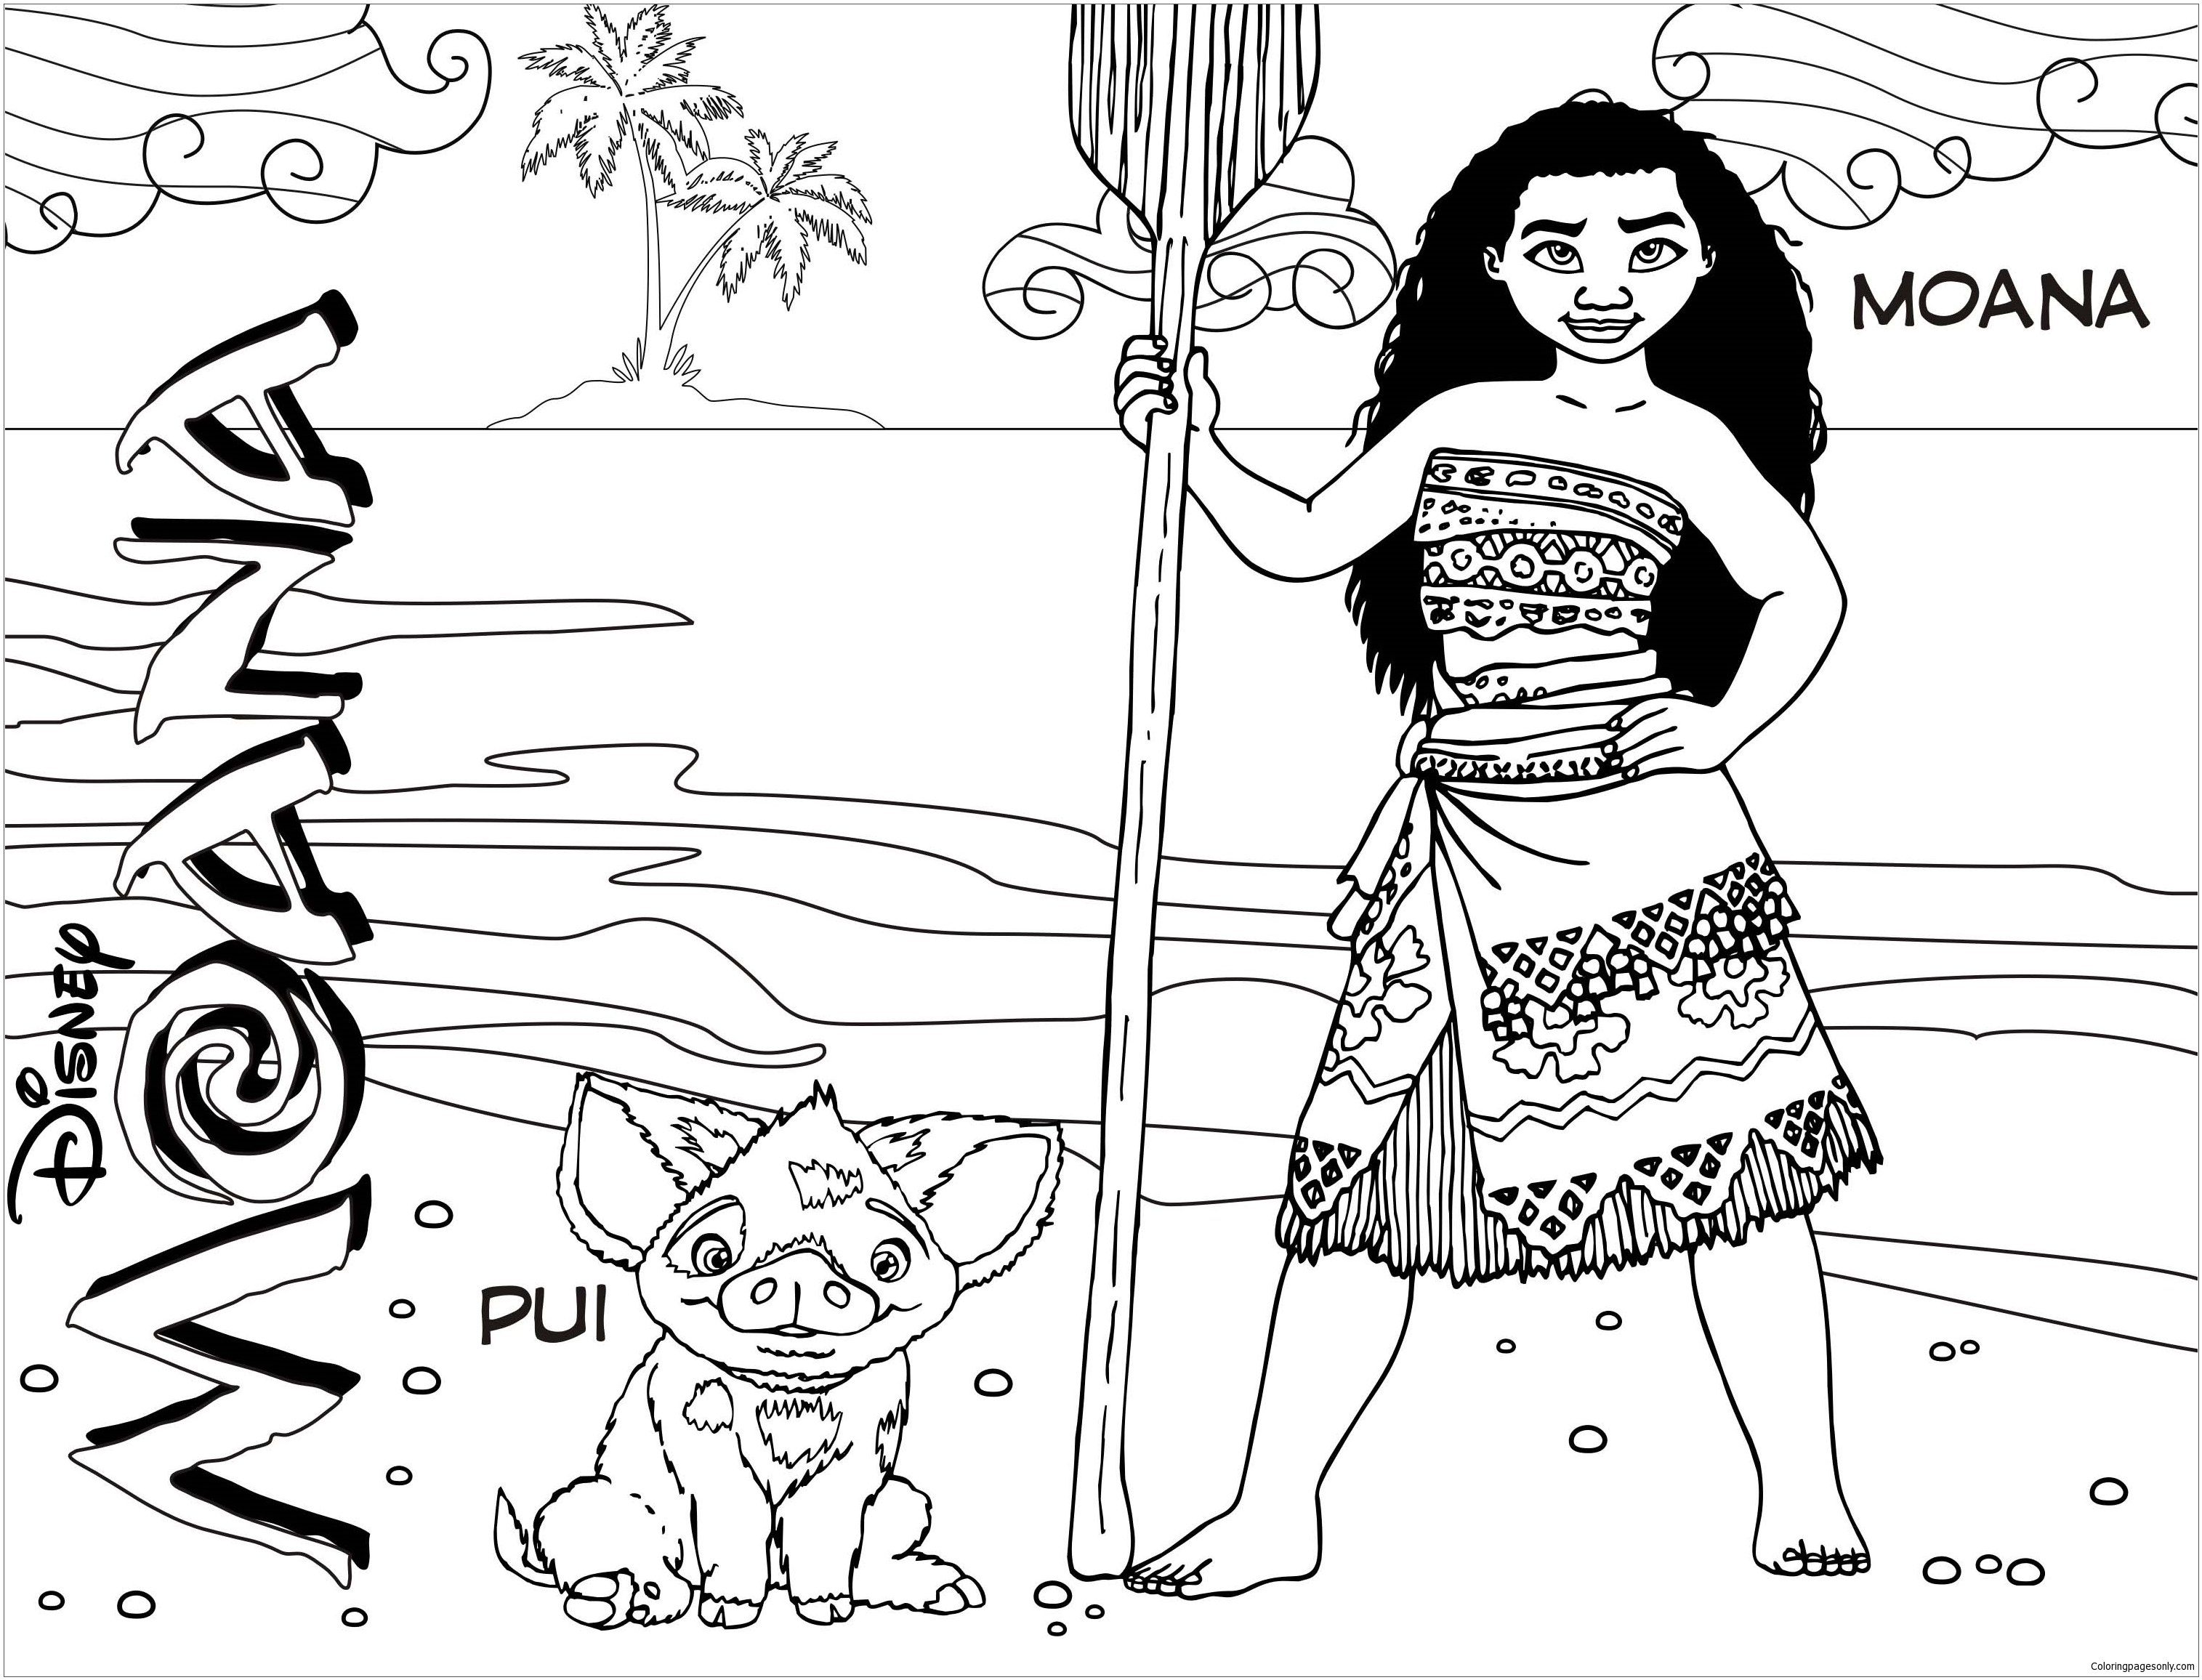 Moana And Pua 2 Coloring Page Free Coloring Pages Online